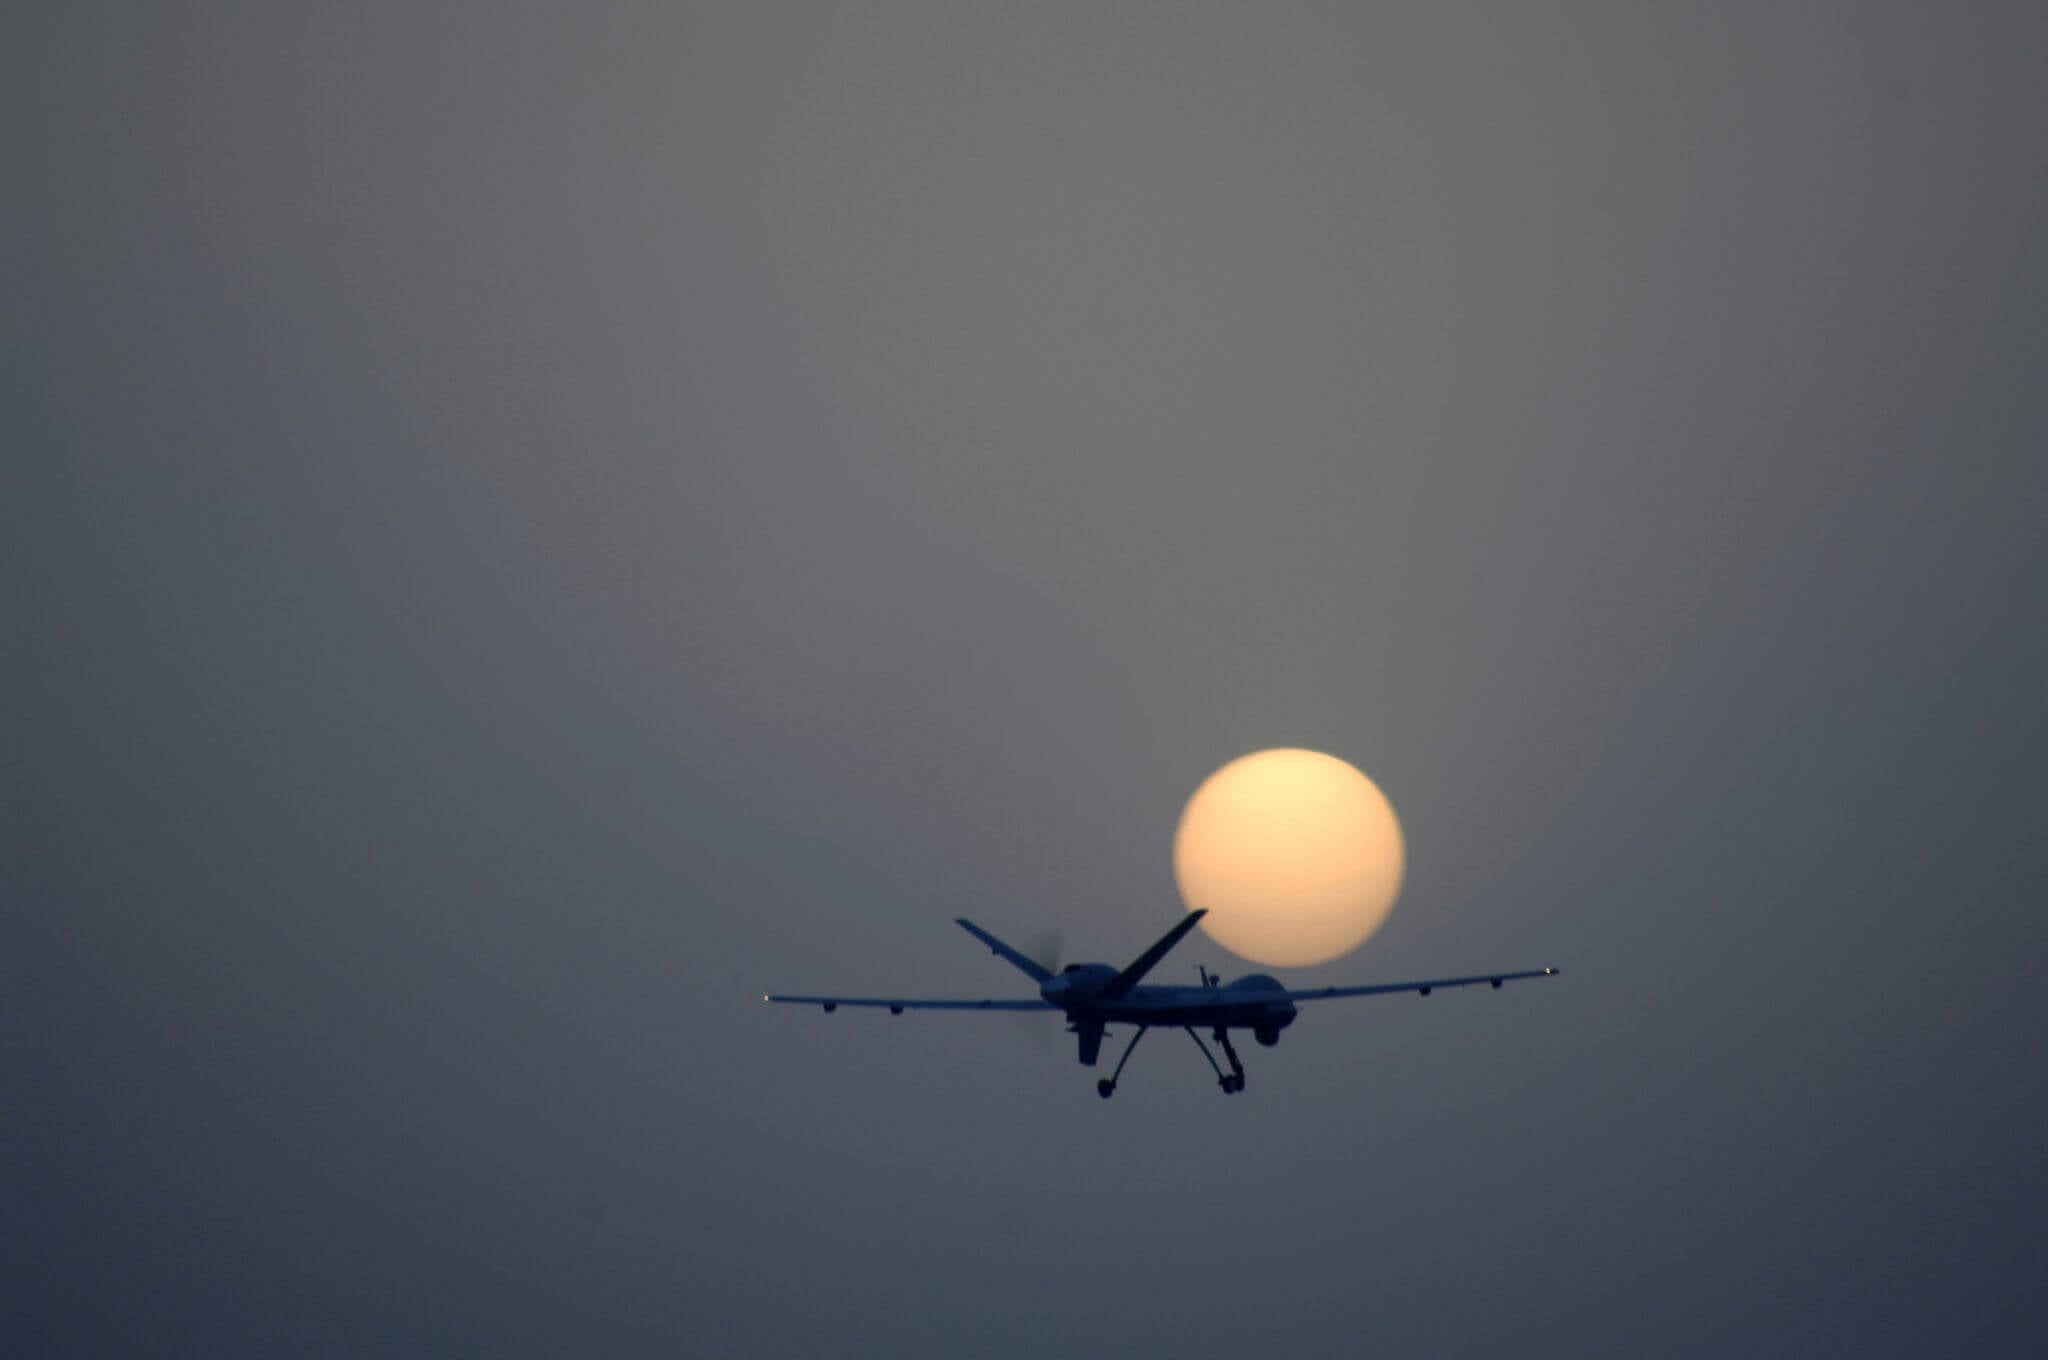 JOINT BASE BALAD, Iraq -- An MQ-9 Reaper remotely piloted aircraft takes off from Joint Base Balad, Iraq, July 17. The Reaper can loiter over battlefields or targets for hours at a time without refueling and carries up to 3,750 pounds of laser-guided munitions, giving ground commanders unprecedented situational awareness and the ability to bring the right amount of force to bear on a target. The Reaper, deployed from Creech Air Force Base, Nev., flew its first combat mission over Iraq July 18. (U.S. Air Force photo/Tech. Sgt. Richard Lisum)